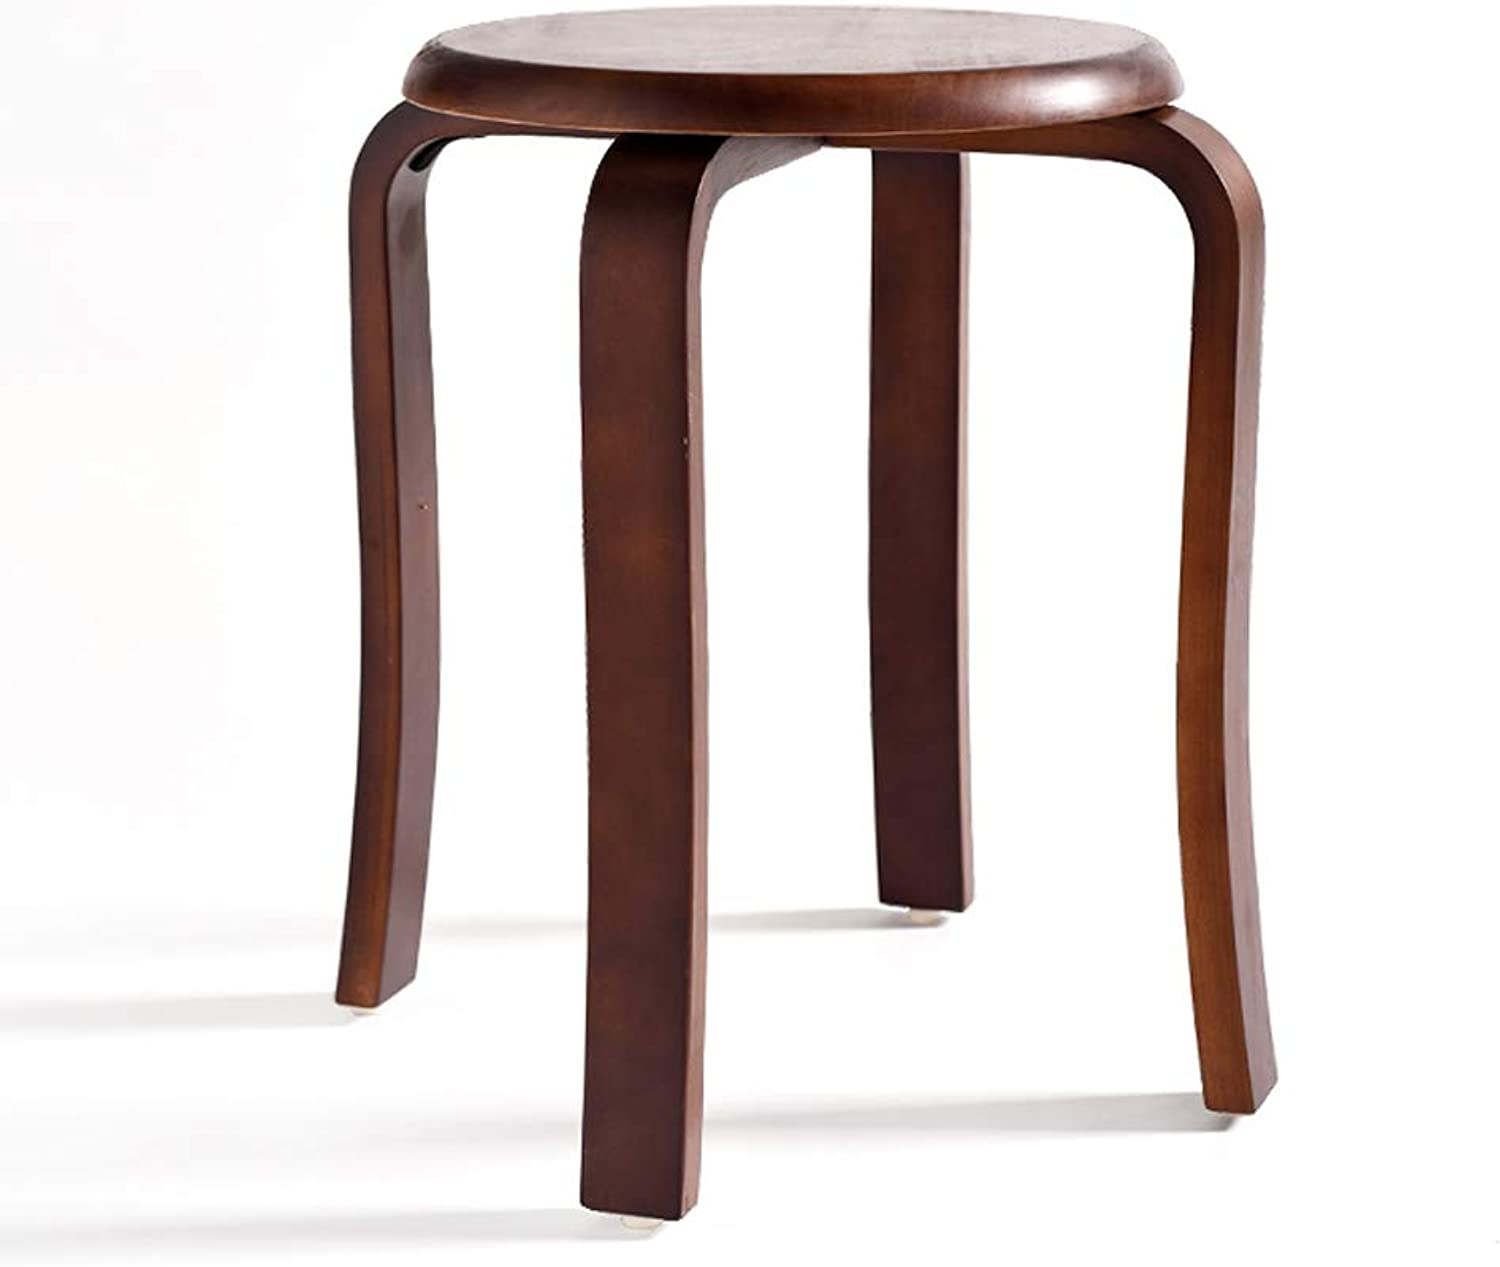 Wooden Stool Creative Dining Stool Fashion Small Bench Home Change shoes Table Stool Low Stool